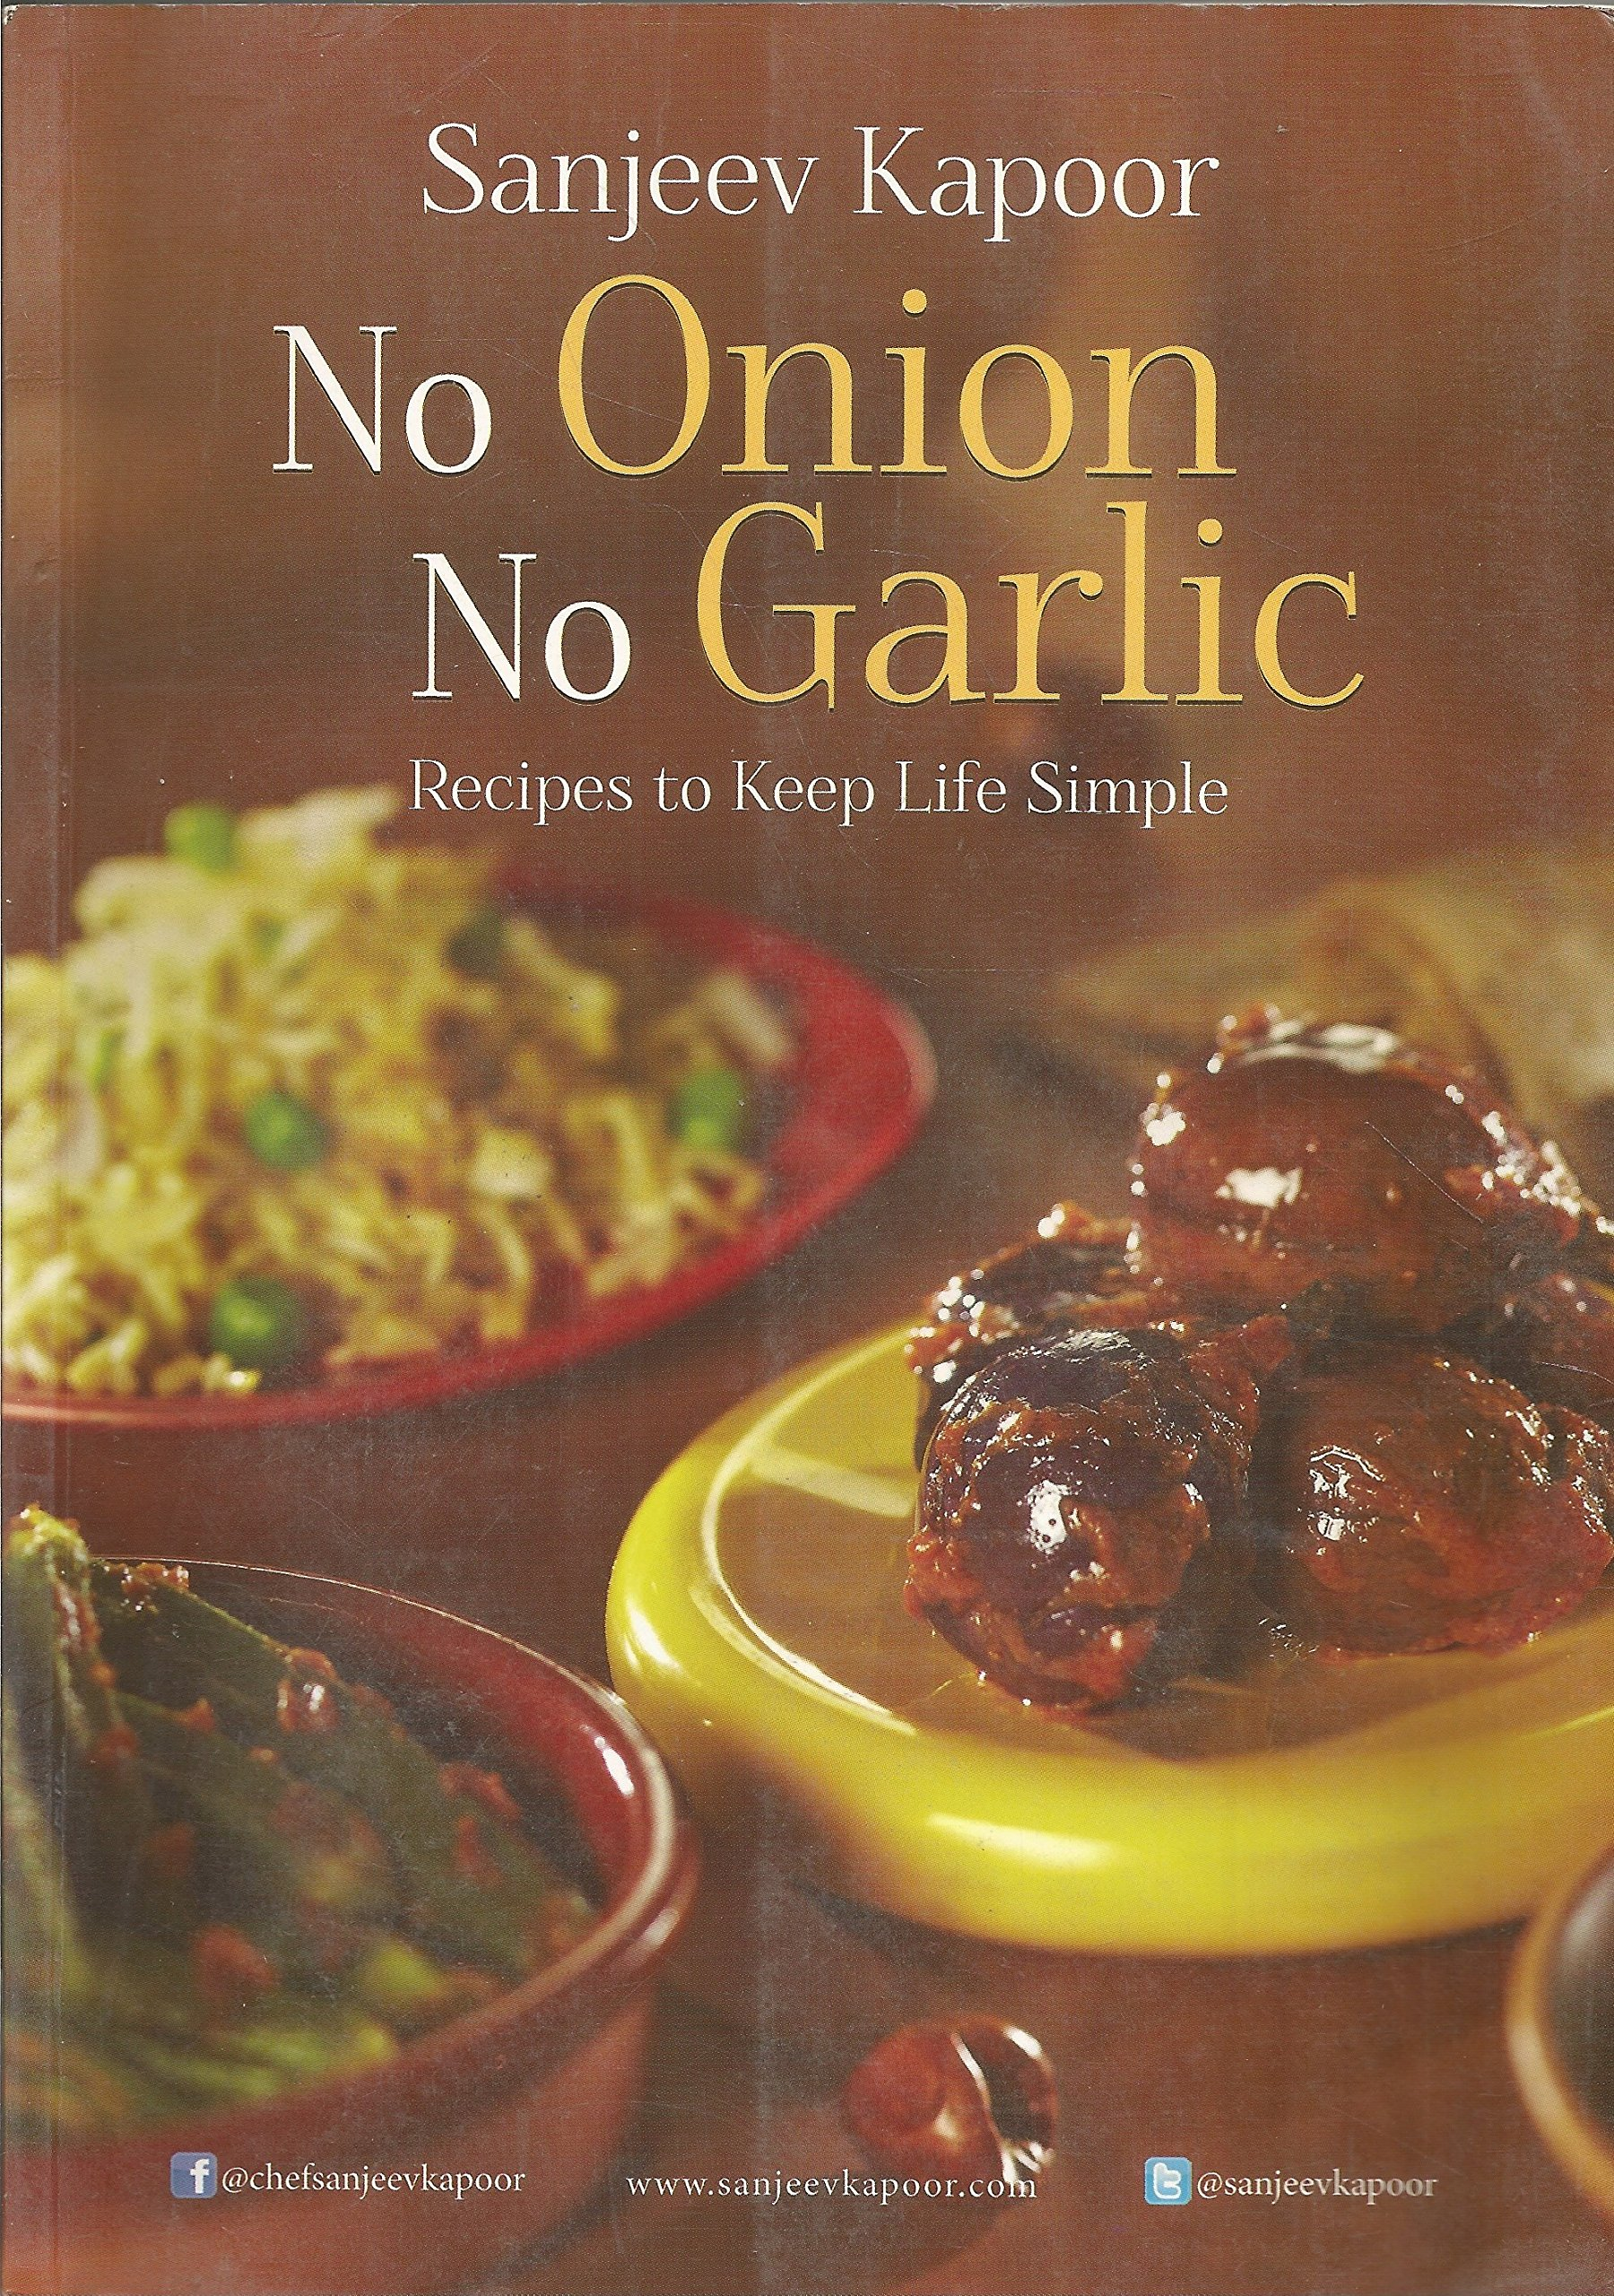 No onion no garlic sanjeev kapoor 9788179917893 amazon books forumfinder Choice Image